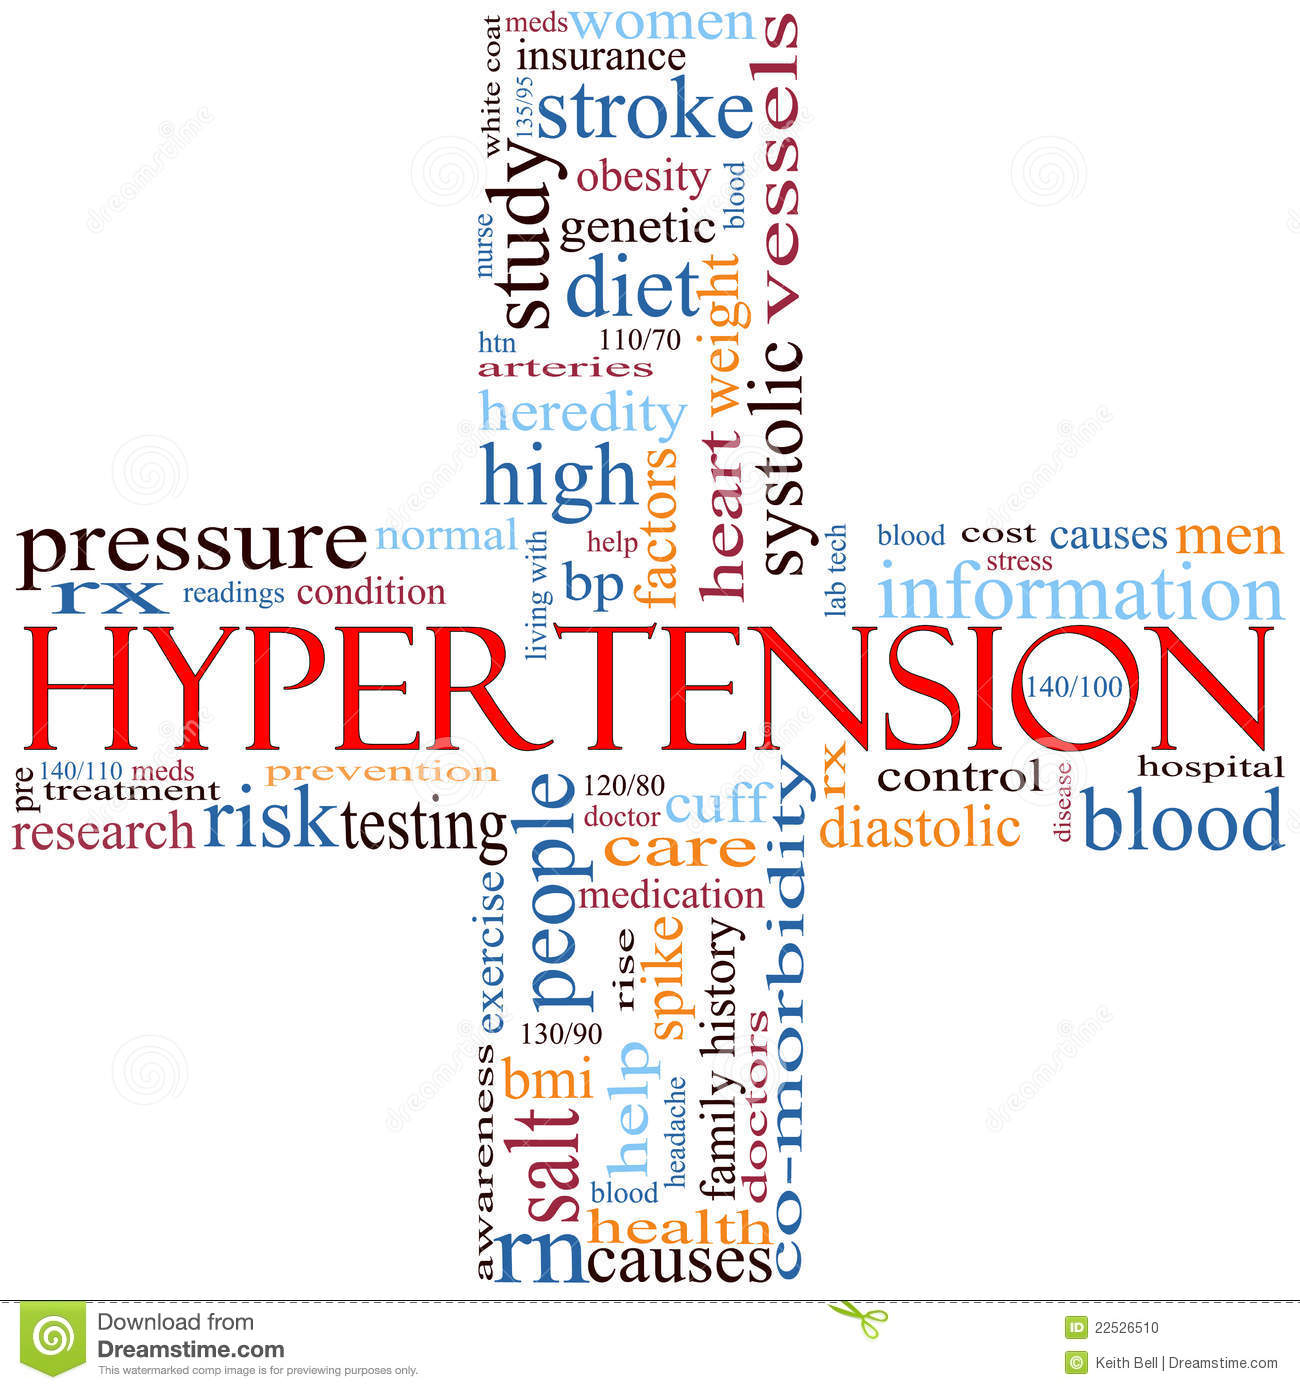 cultural endemic disease hypertension Cardiovascular health disparities among african americans are widely recognized, and hypertension is the most prominent risk factor in the development of cardiovascular disease in african americans, said study author sharon wyatt, rn, phd, from the university of mississippi medical center in jackson, mississippi.